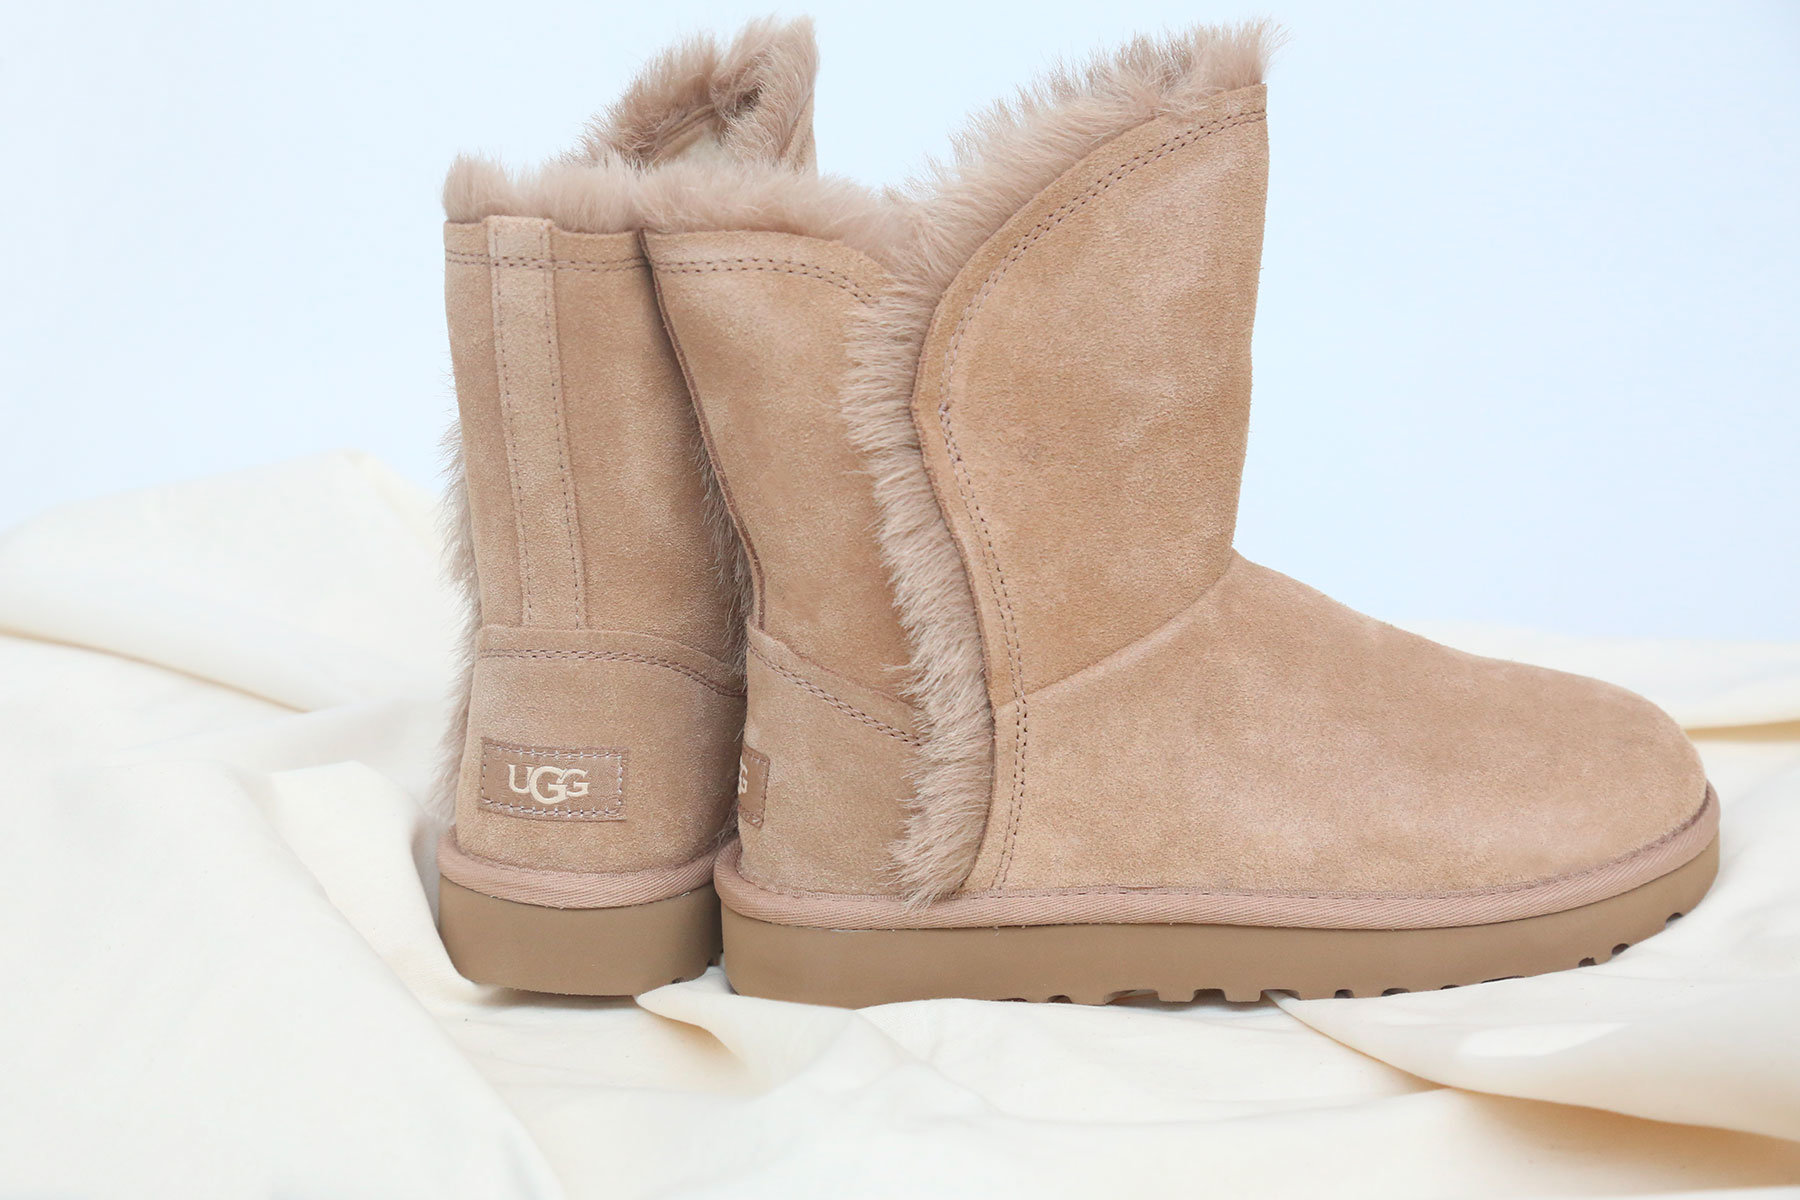 cheapest place to buy ugg boots